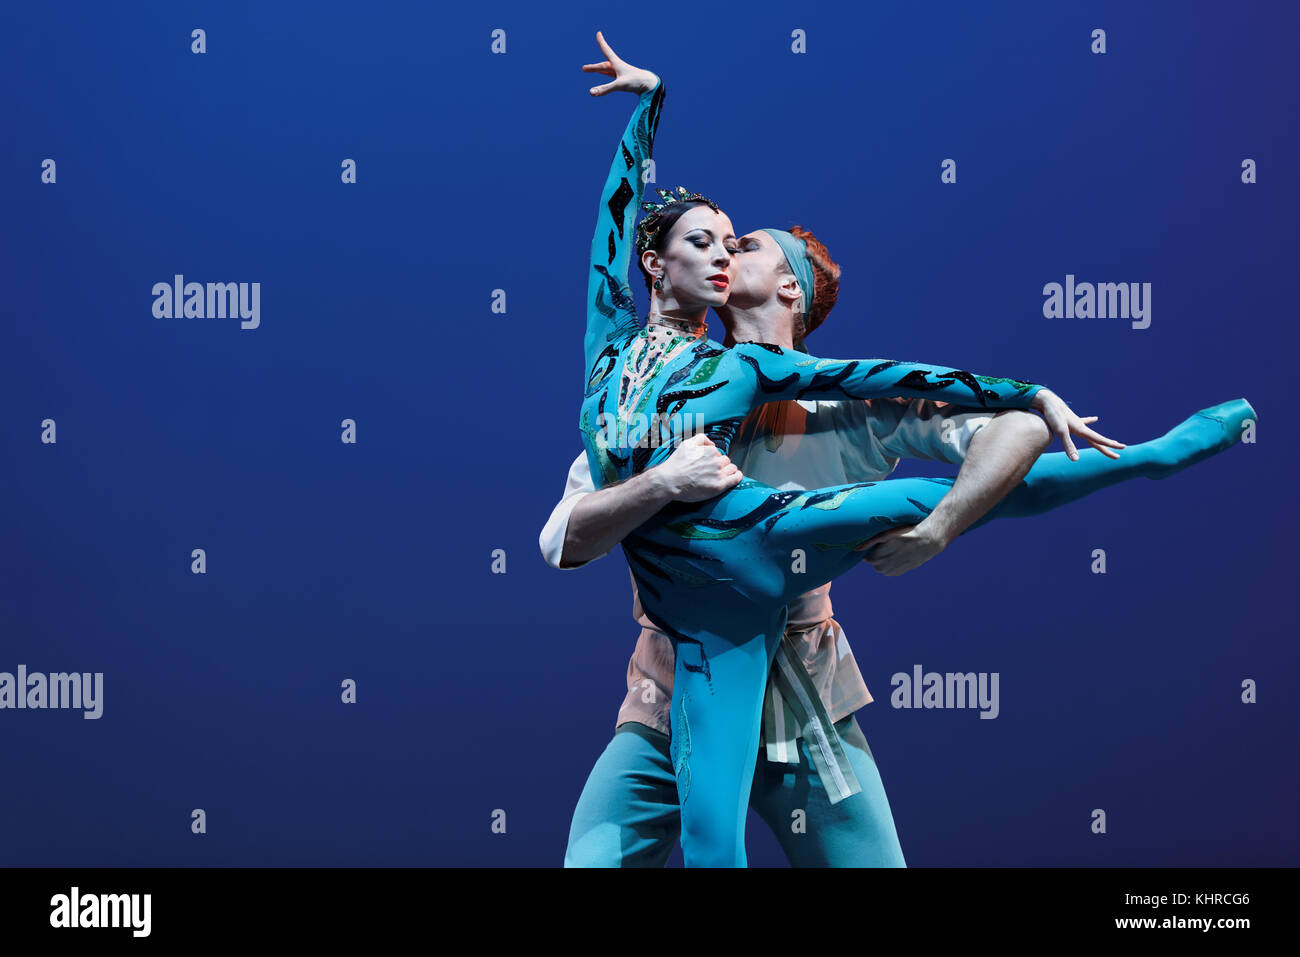 St. Petersburg, Russia - November 16, 2017: Ballet soloists of Mariinsky theater Viktoria Tereshkina and Andrei - Stock Image